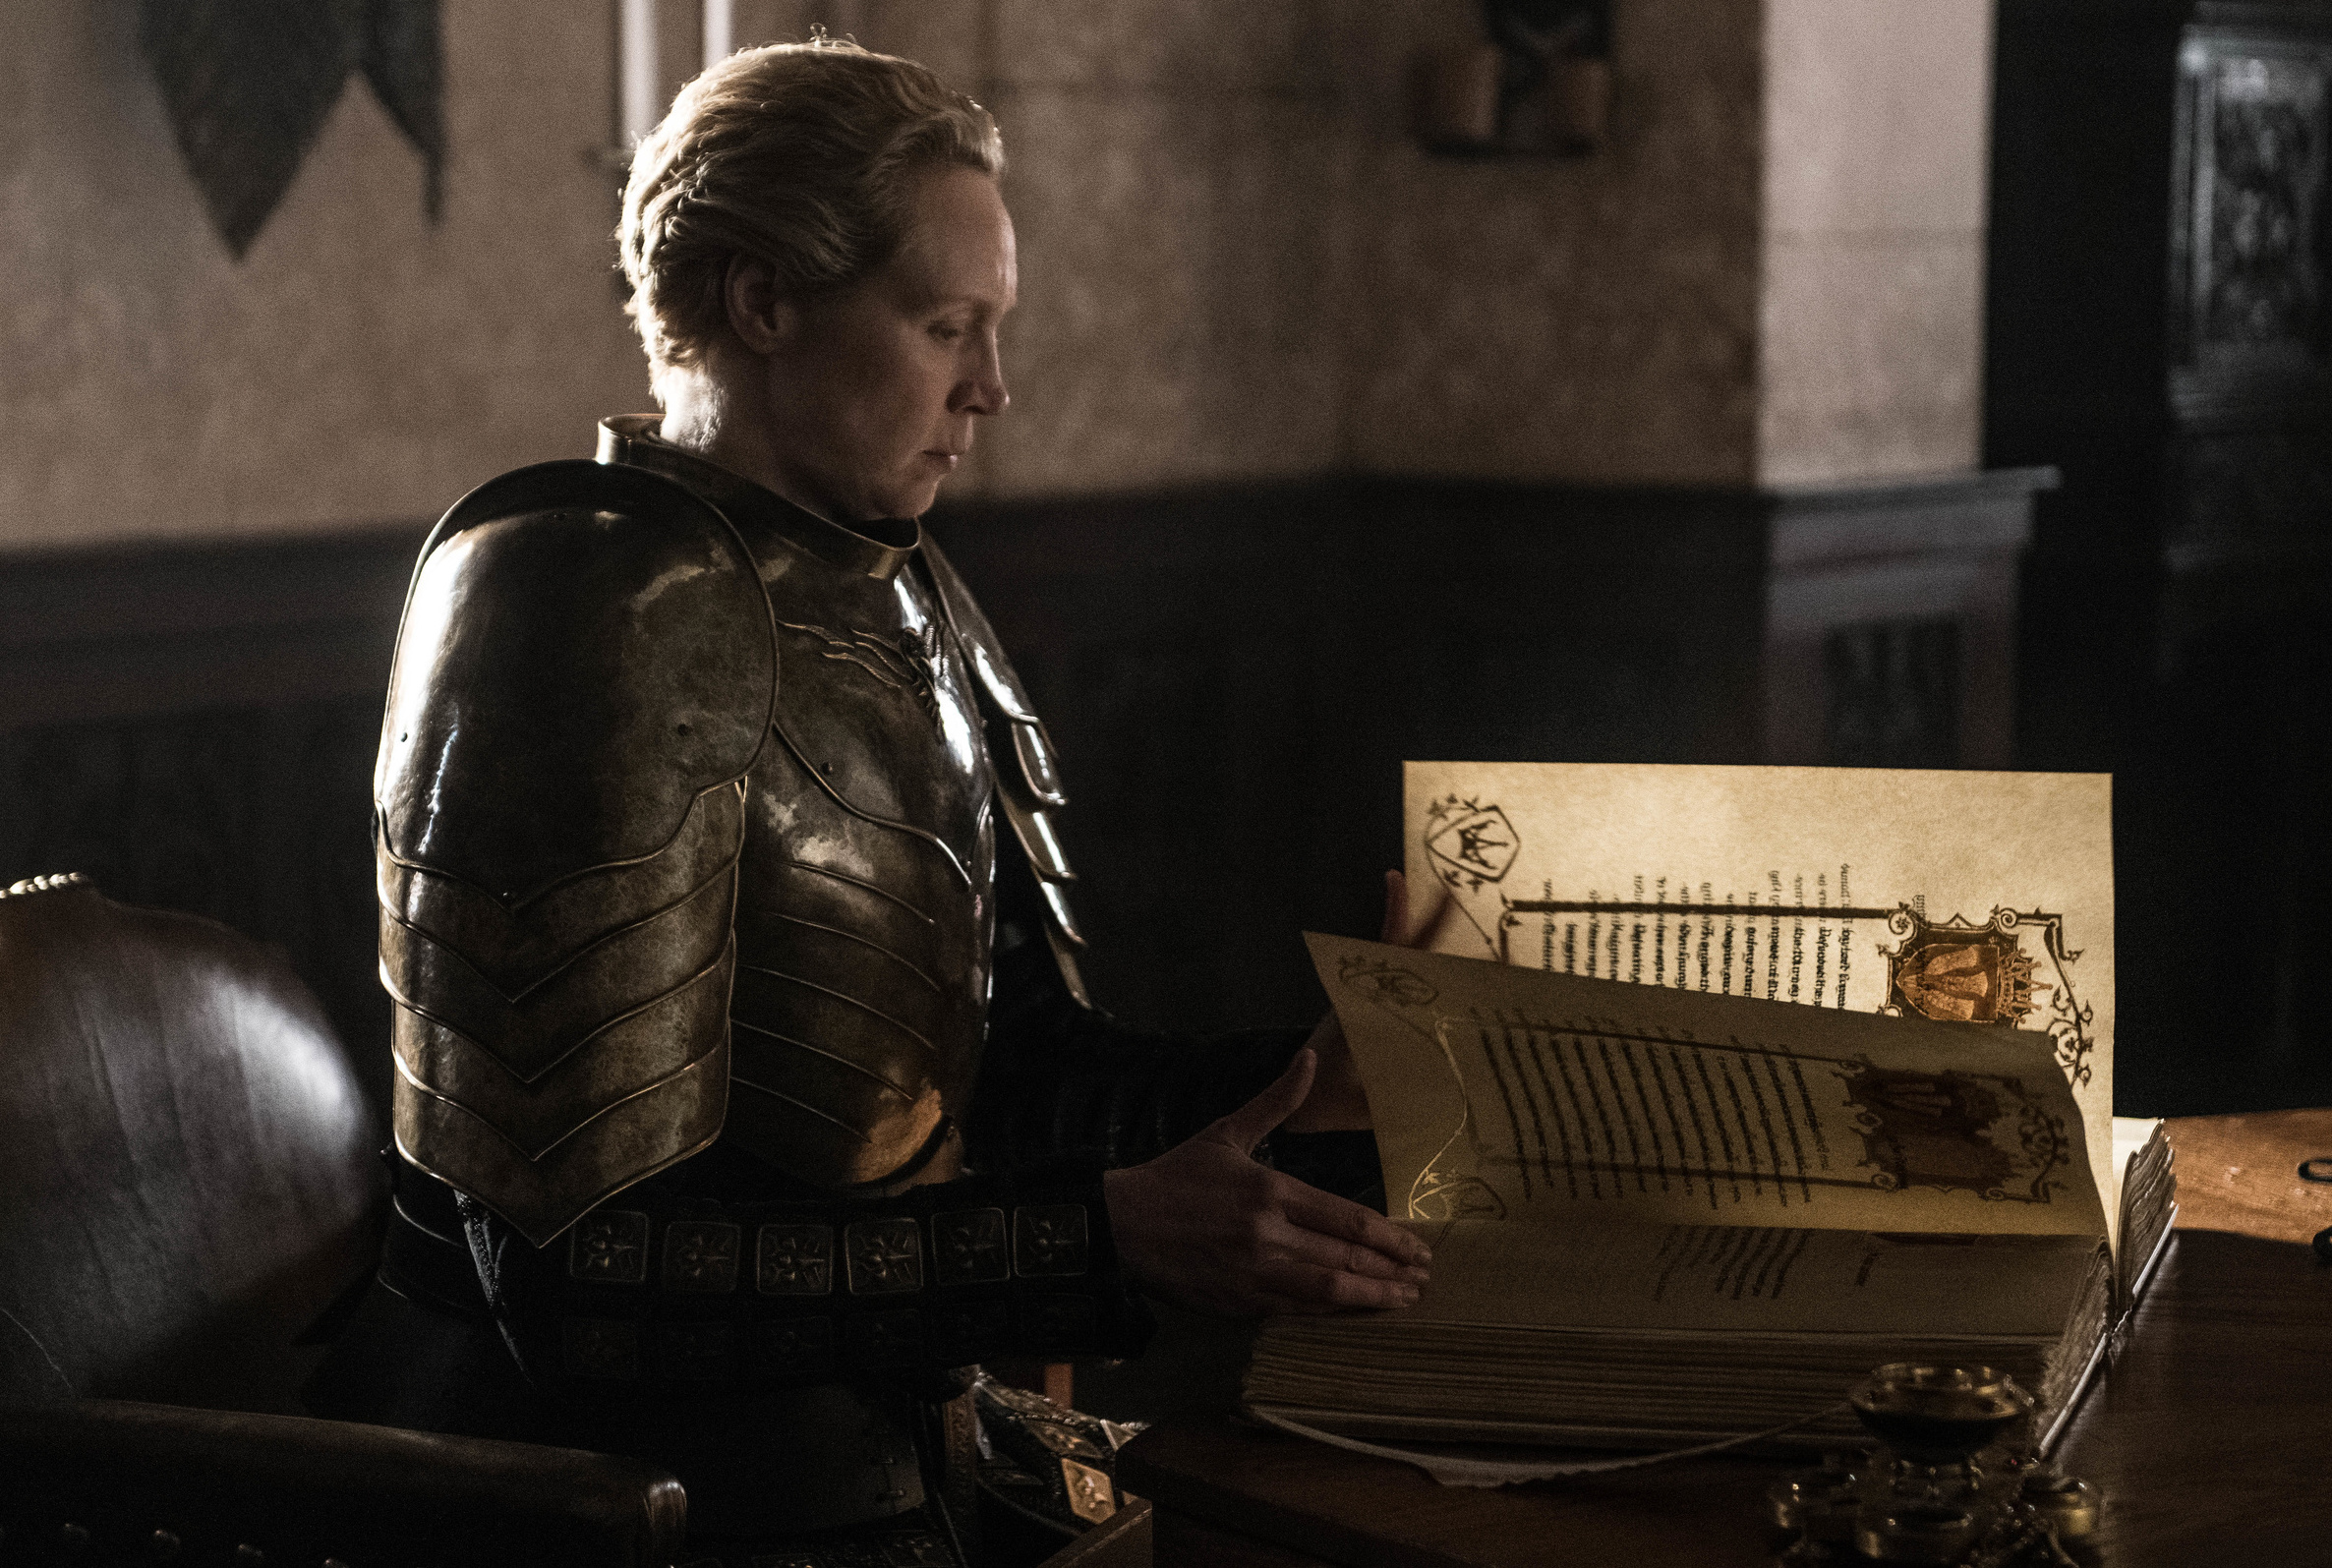 The Game of Thrones series finale ratings set a new record for HBO